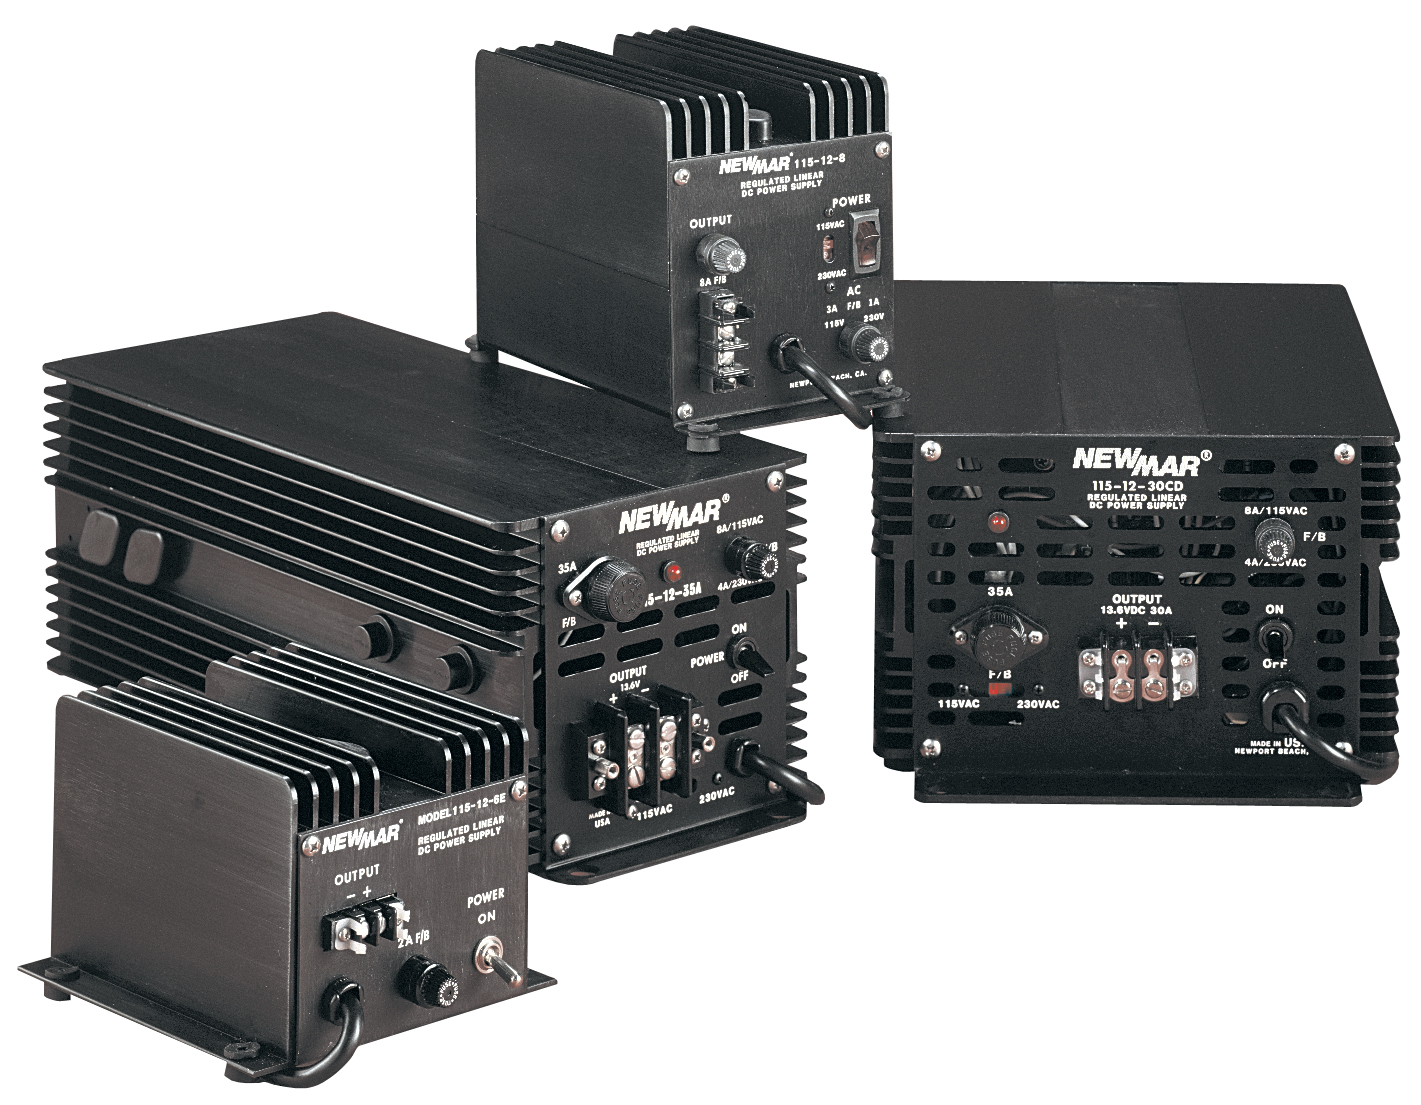 Marine Dc Power Supplies 12v 24v And 48v Newmar Onboard To Converter Circuit Heavy Duty Series